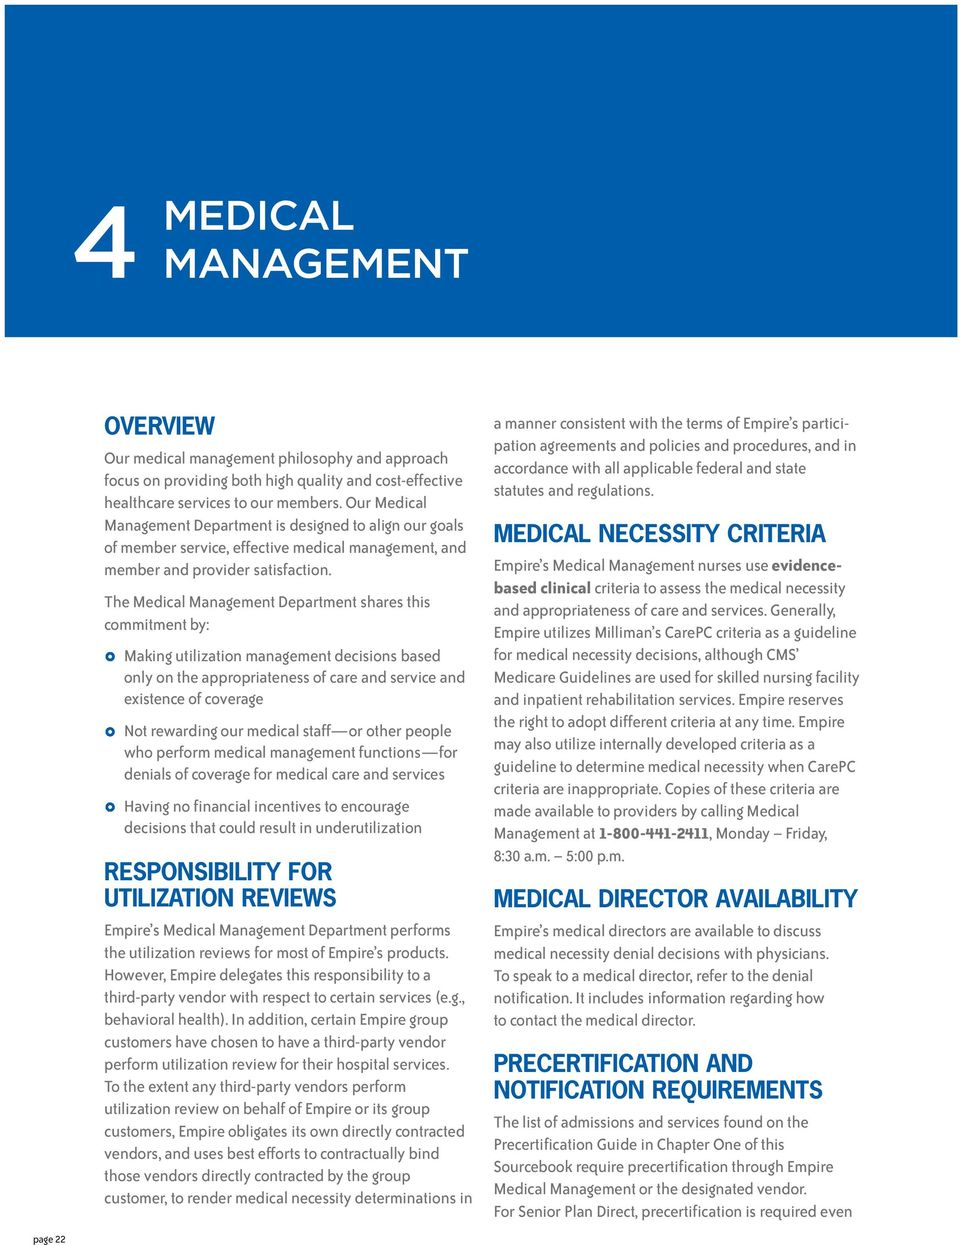 The Medical Management Department shares this commitment by: Making utilization management decisions based only on the appropriateness of care and service and existence of coverage Not rewarding our